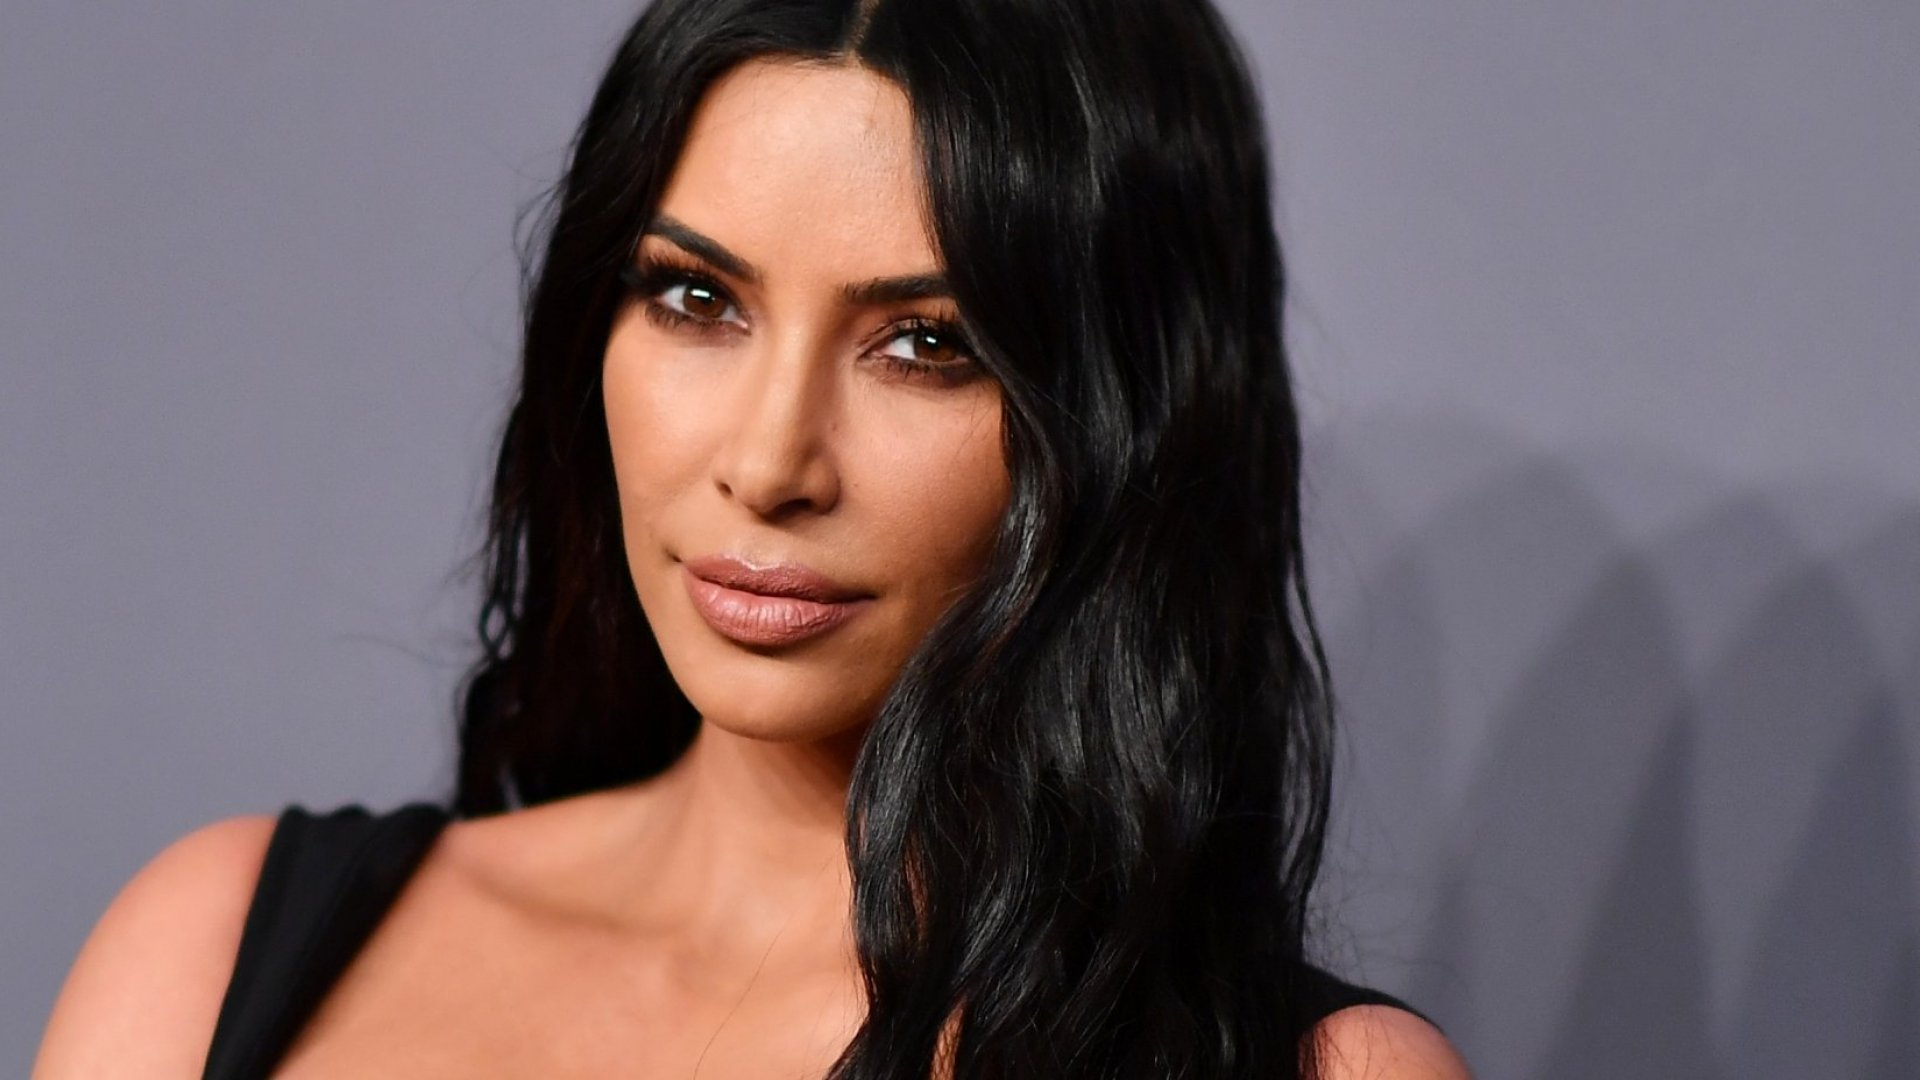 Kim Kardashian West Is Getting Called Out for Cultural Appropriation. Here's How You Can Avoid a Similar Fate